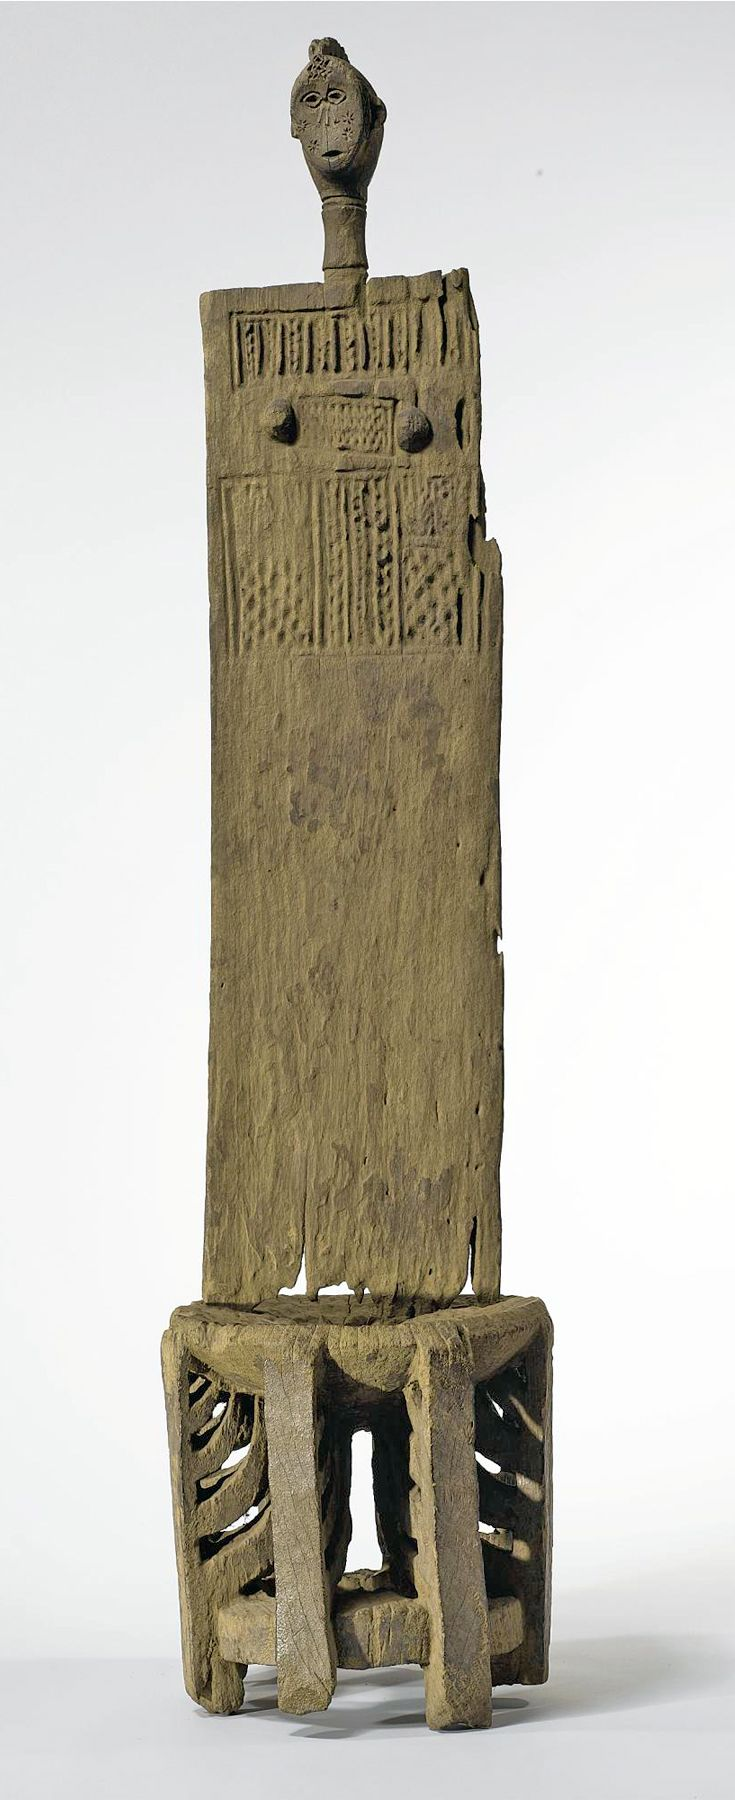 Africa | Throne from the Kwere people of eastern Tanzania | Wood; aged varied light brown patina